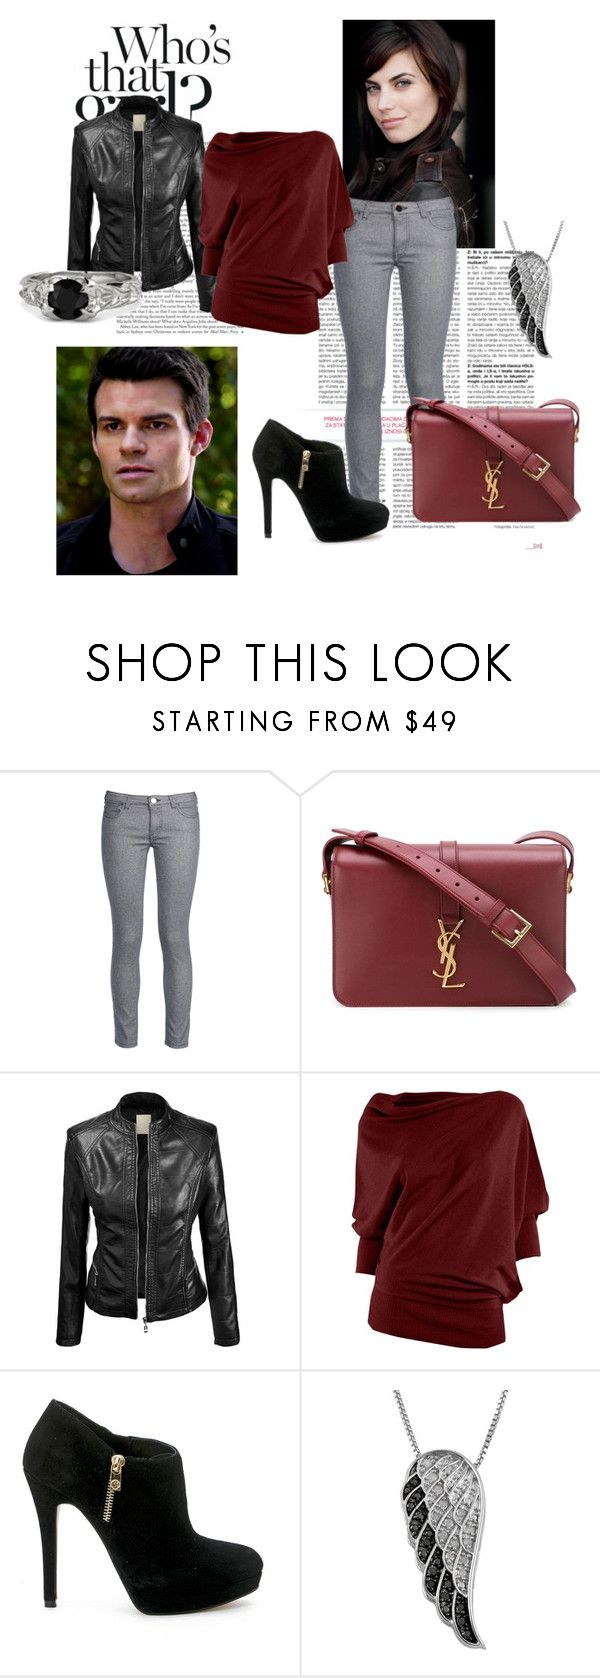 """""""Unbenannt #61"""" by melli91 ❤ liked on Polyvore featuring George J. Love, Yves Saint Laurent, Max Studio, MICHAEL Michael Kors, Jewel Exclusive, Gemvara, women's clothing, women, female and woman"""